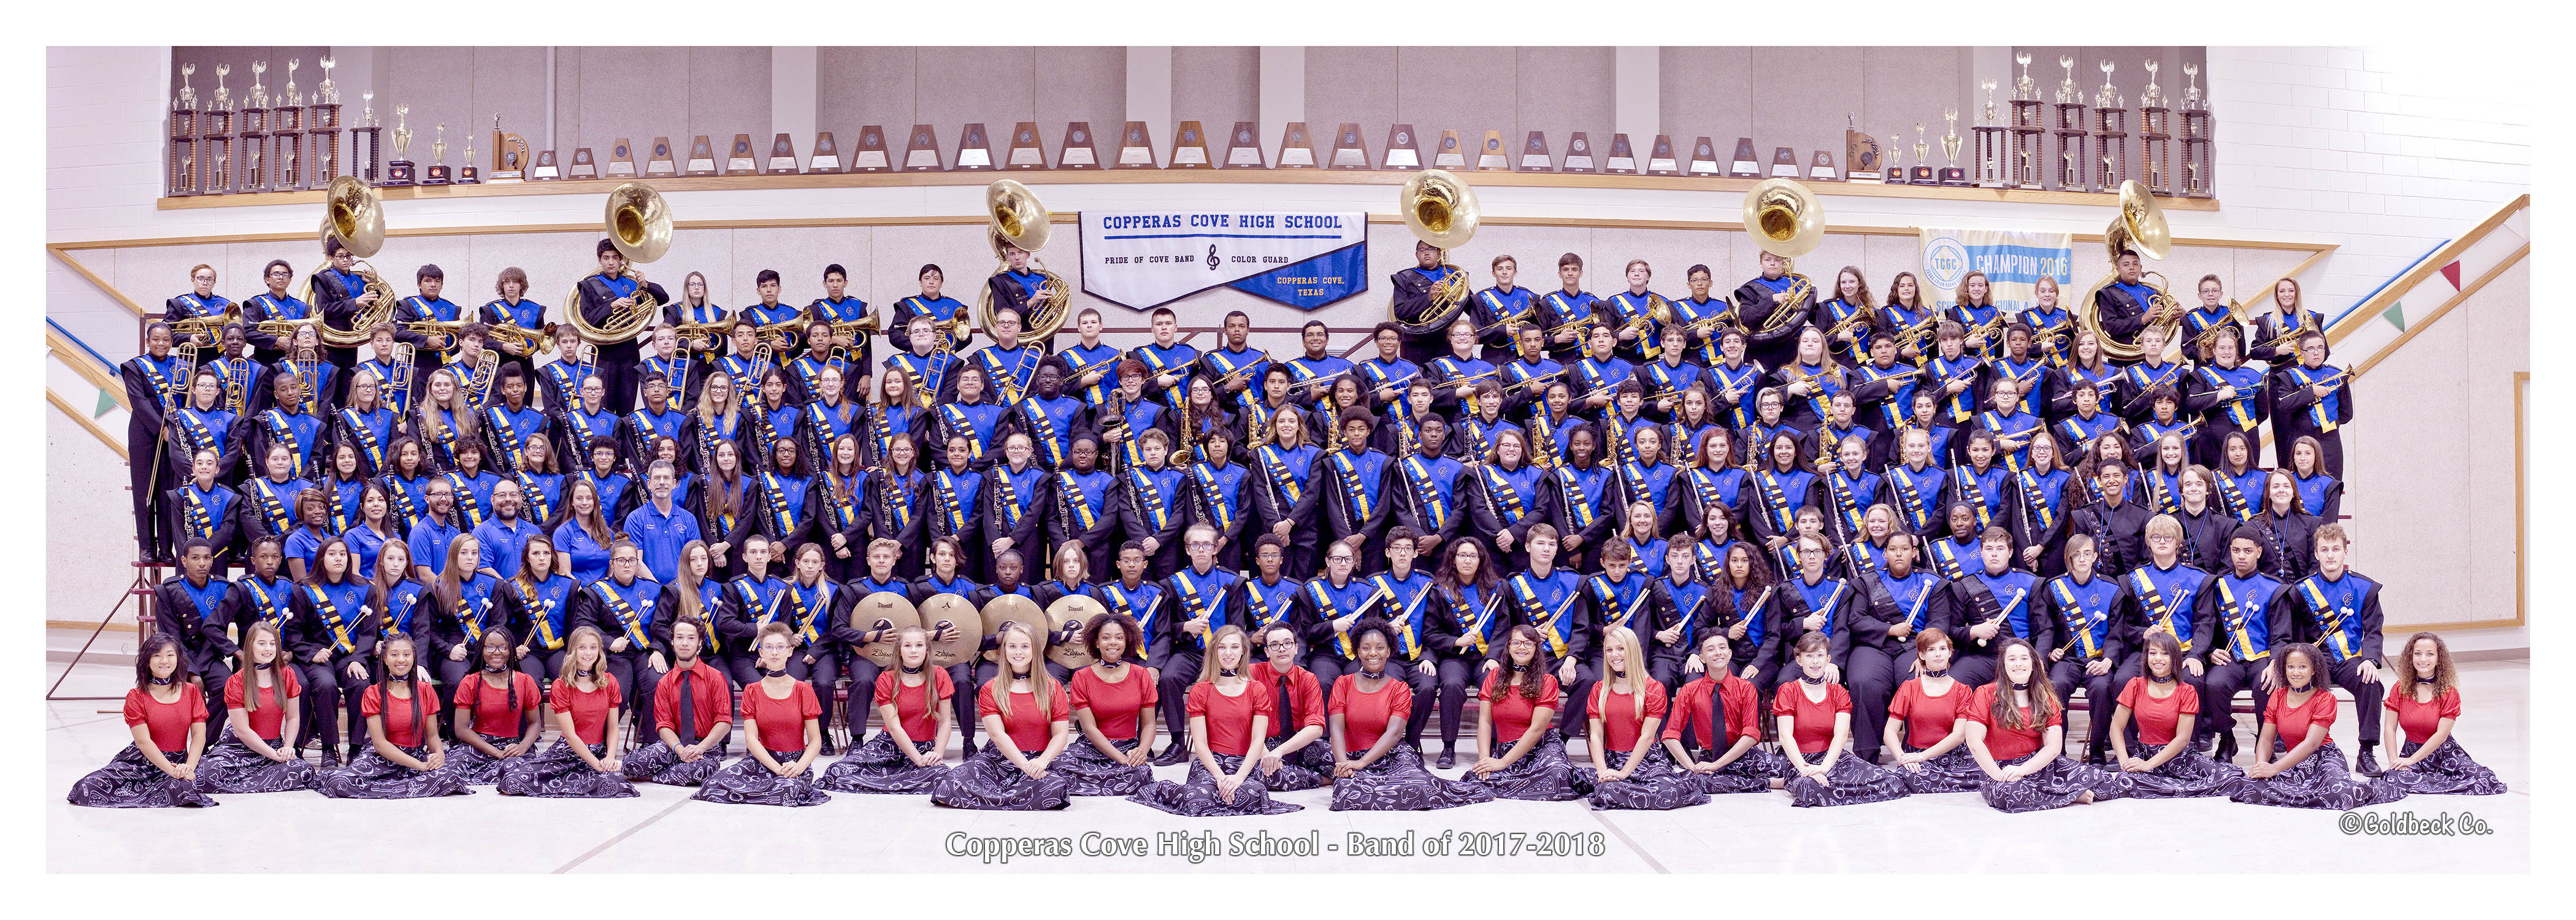 Copperas Cove High School Pride of Cove Band for 2017-2018